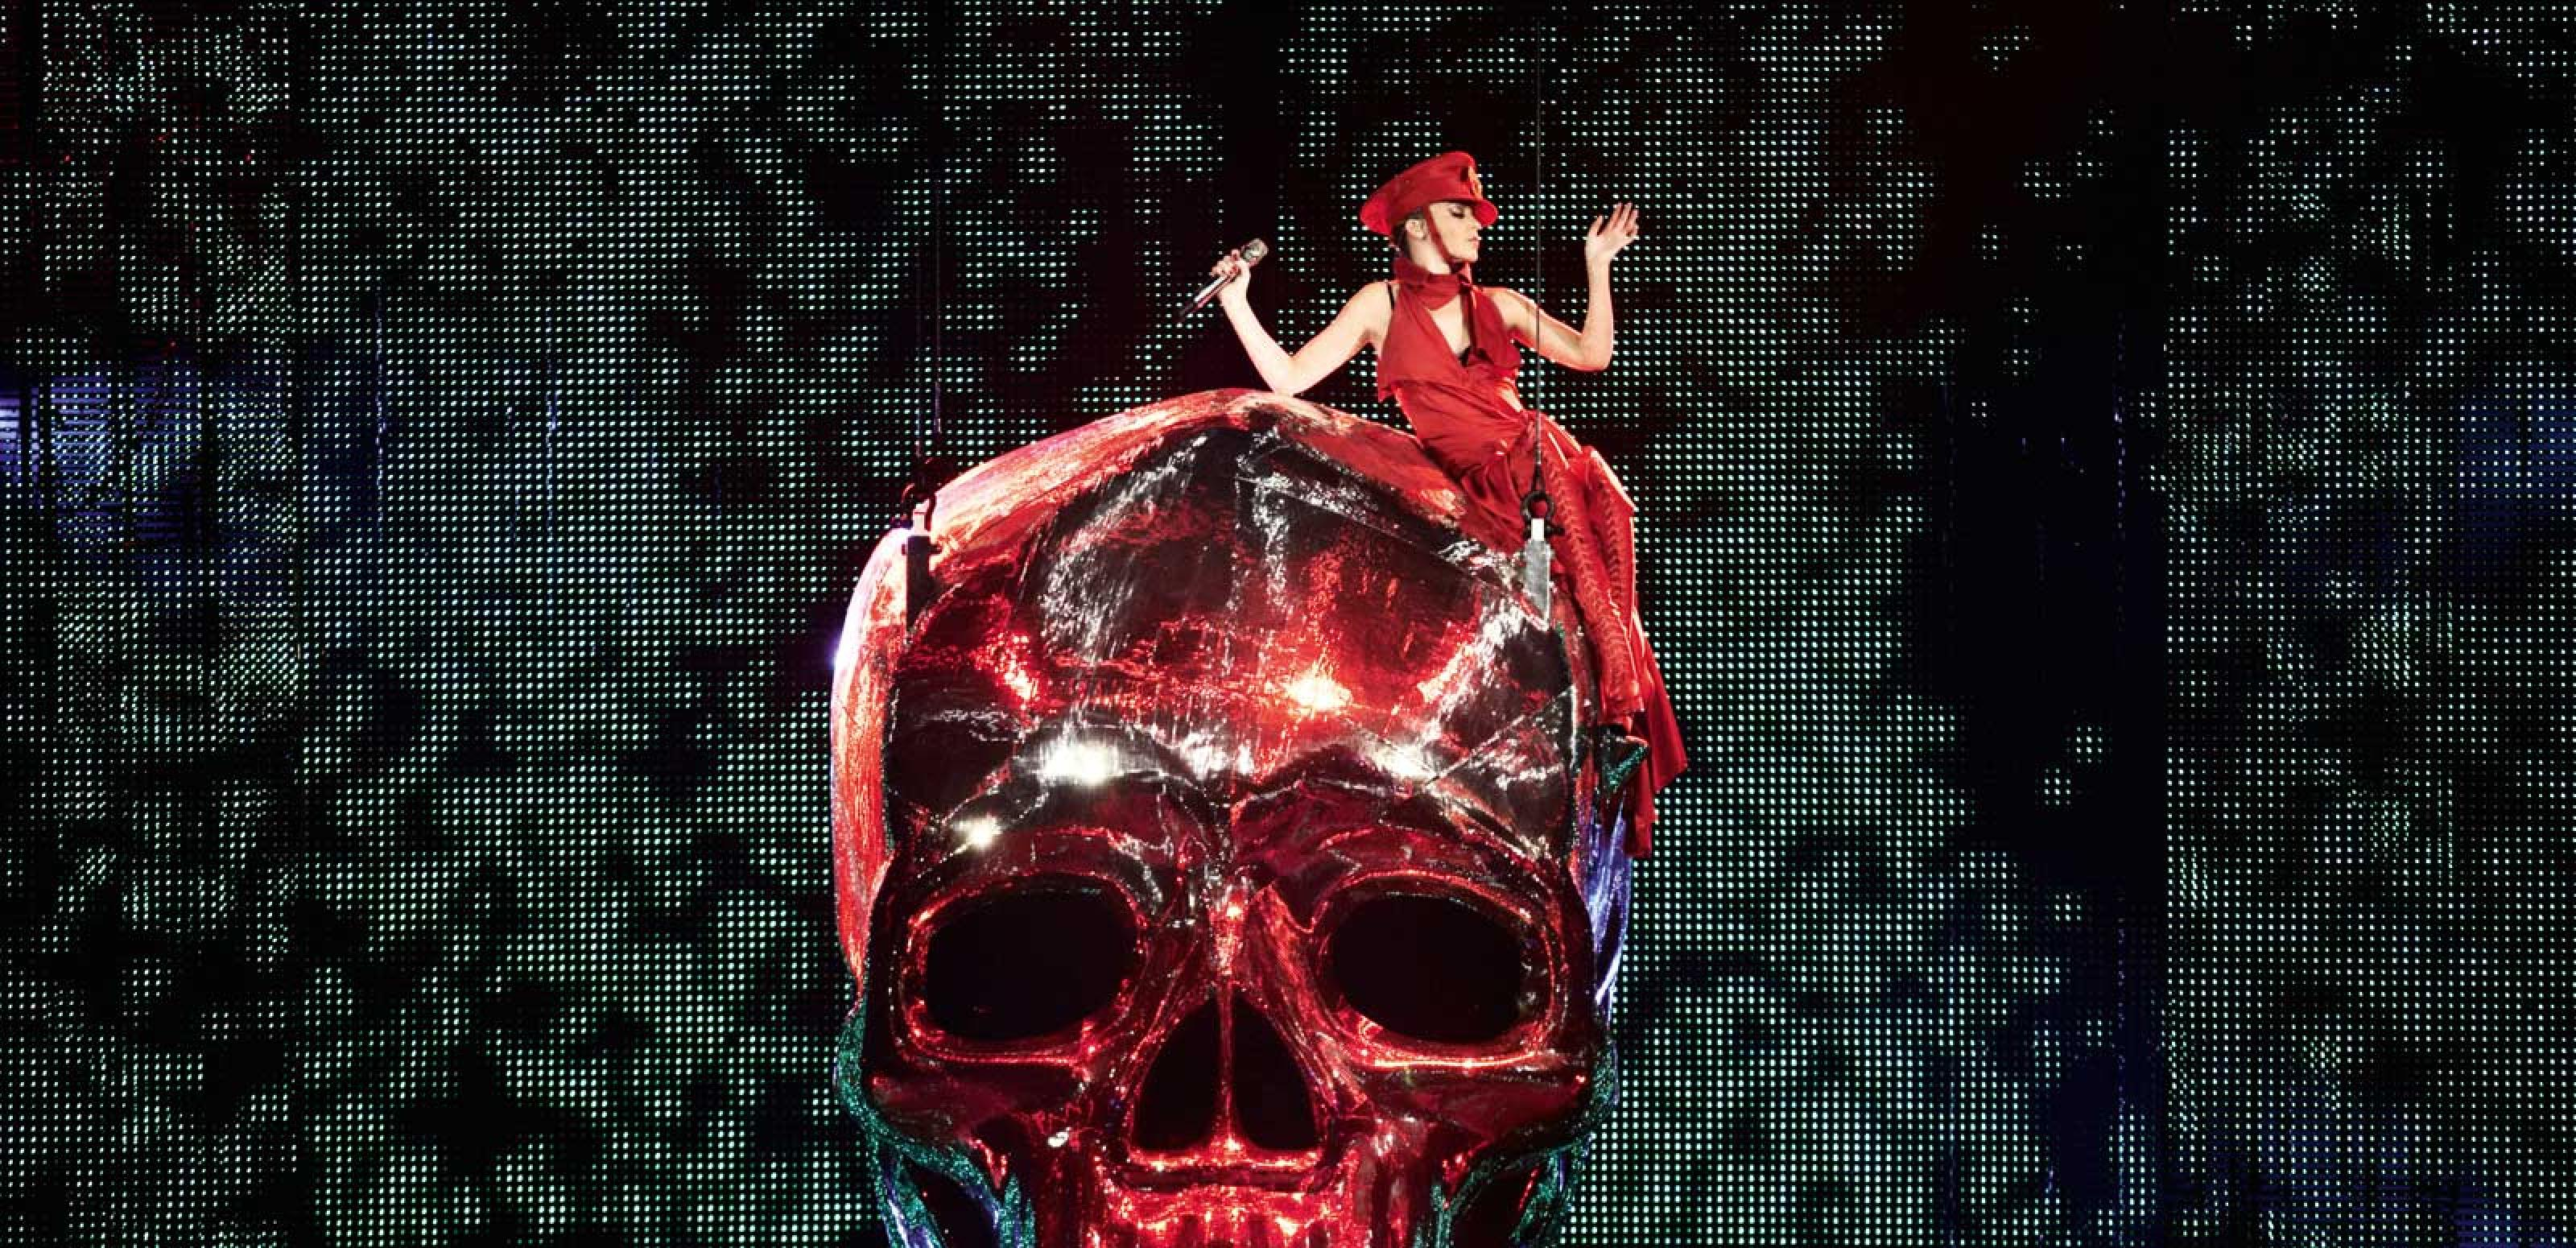 Kylie Minogue, dressed entirely in red, is sitting on top of a giant red shiny skull prop at one of her live shows.